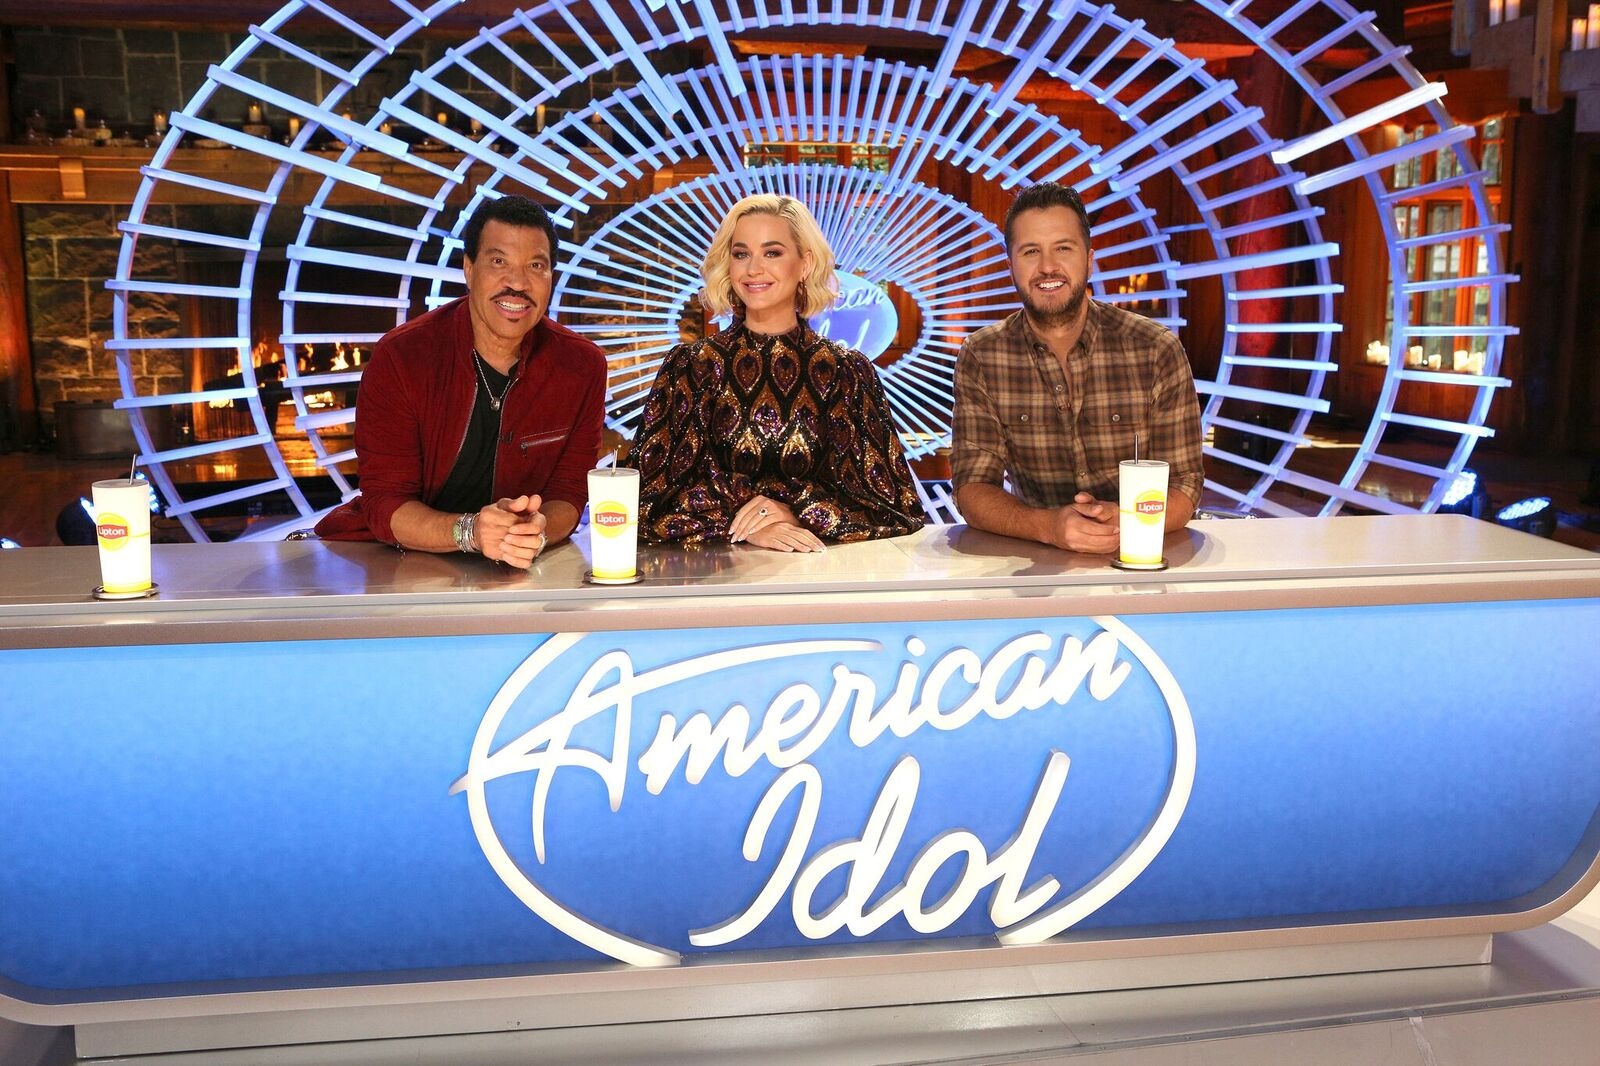 """Lionel Richie, Katy Perry, and Luke Bryan on the set of """"American Idol"""" season 3. Image uploaded onNovember 08, 2019 